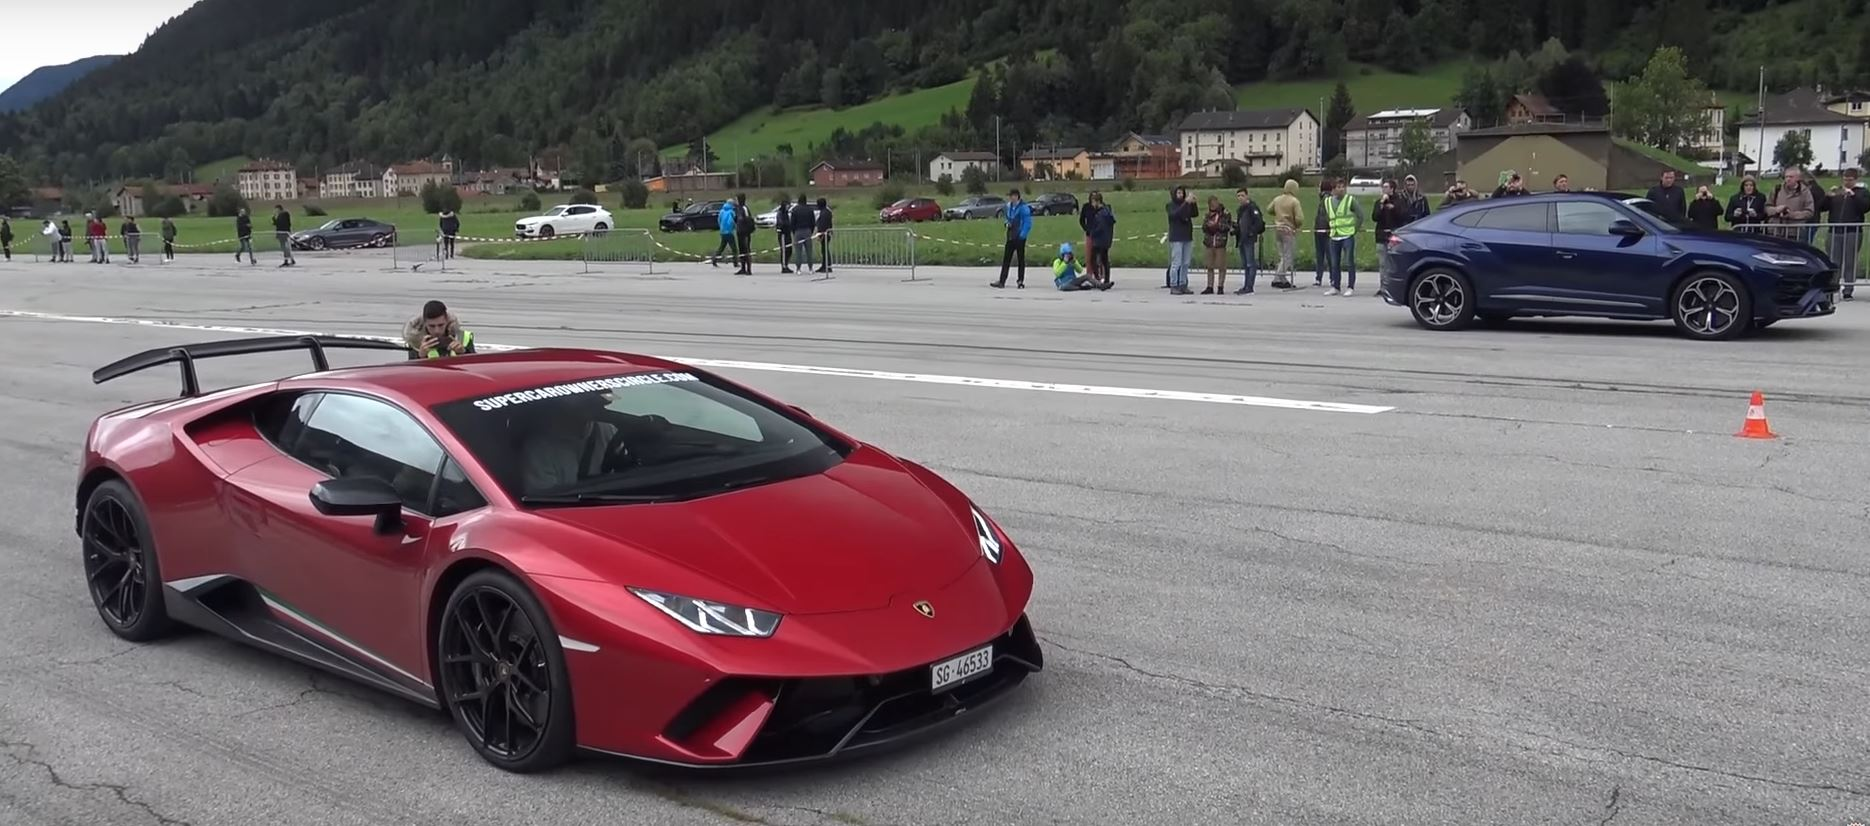 Lamborghini Urus Racing Itself Is The Most Swiss Thing Ever